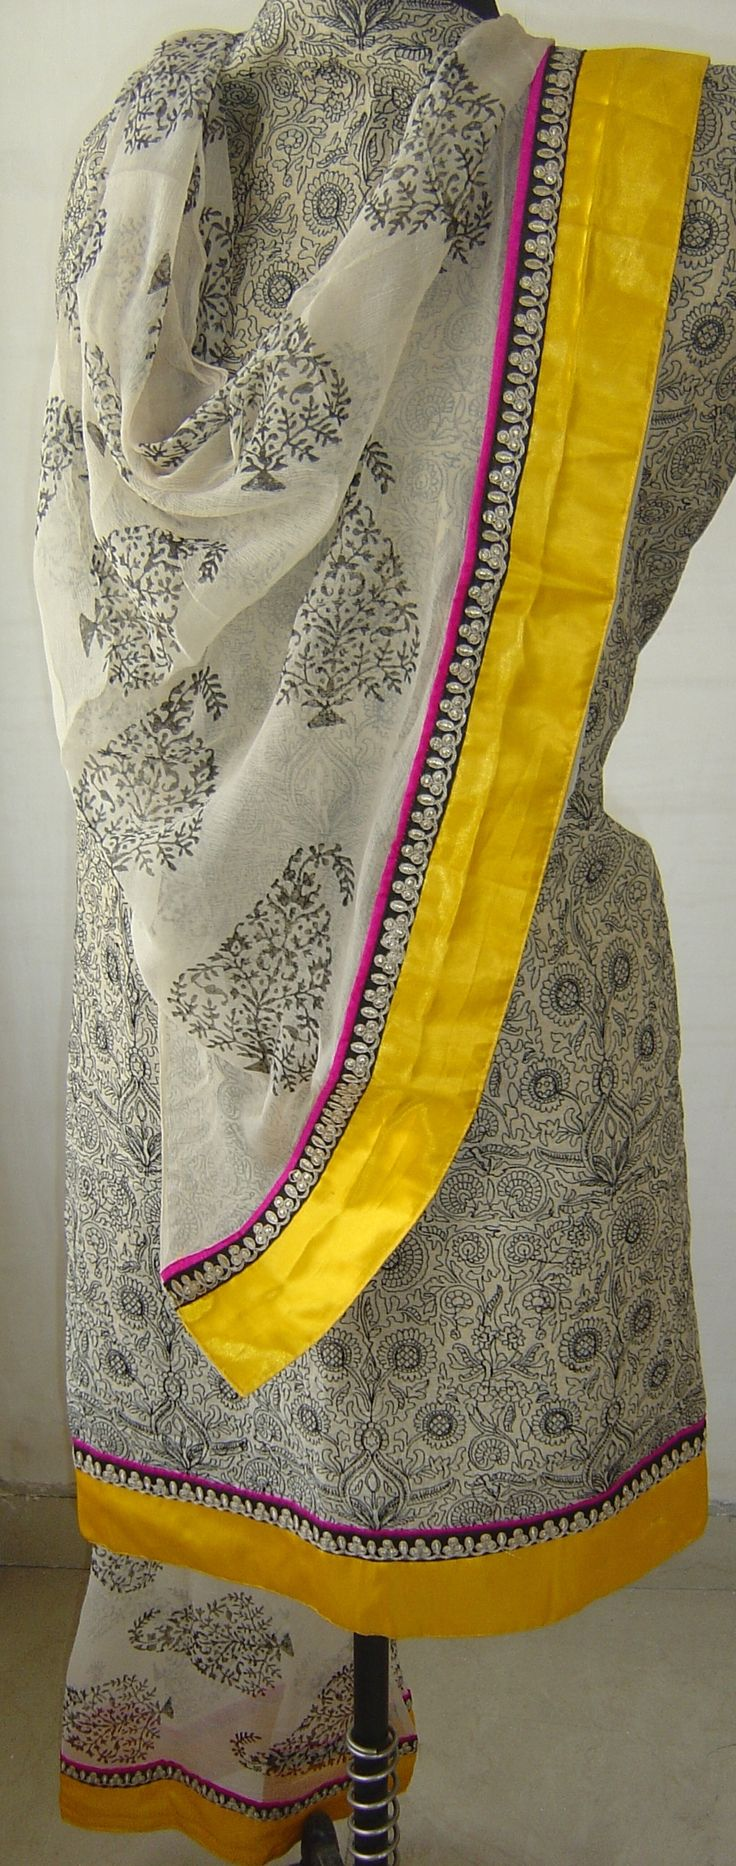 Chanderi suit with embroidery & satin border. For orders and inquiries, please mail us at naari@aninditacreations.com.  Like us at www.facebook.com/naari.aninditacreations